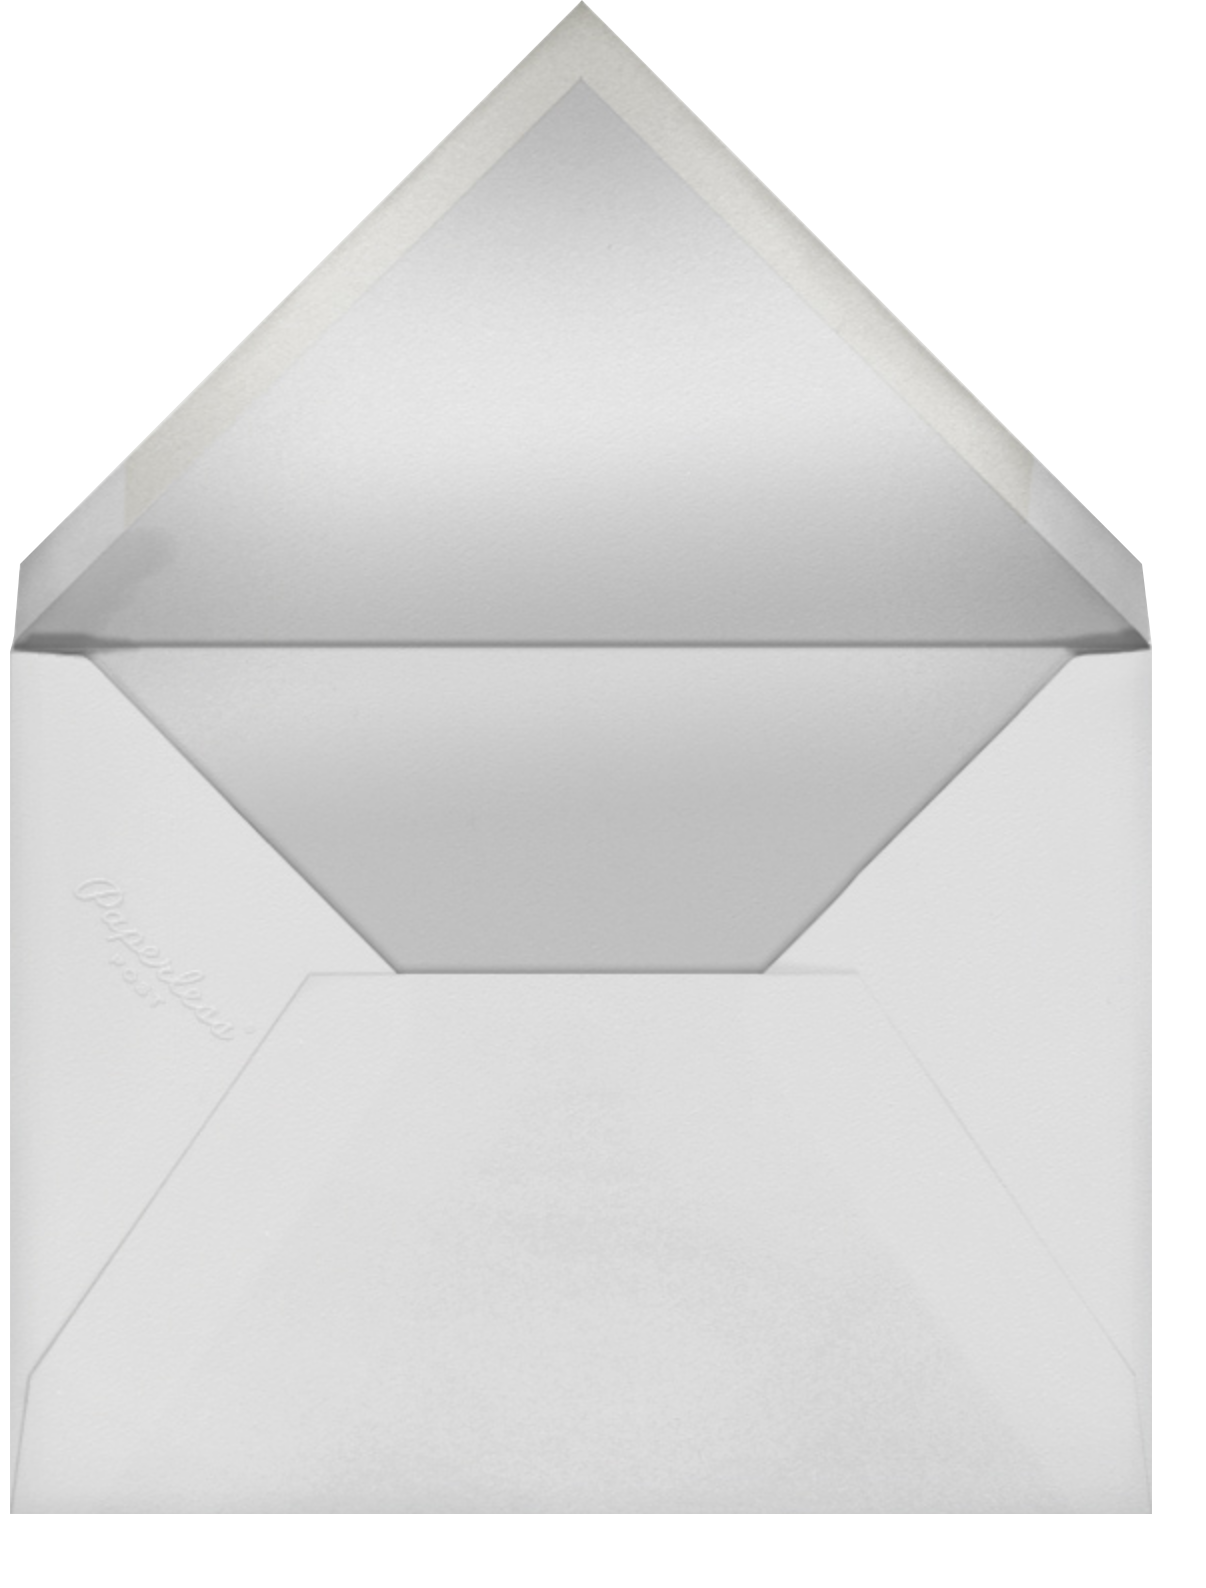 Daybill - Lagoon - Paperless Post - Engagement party - envelope back